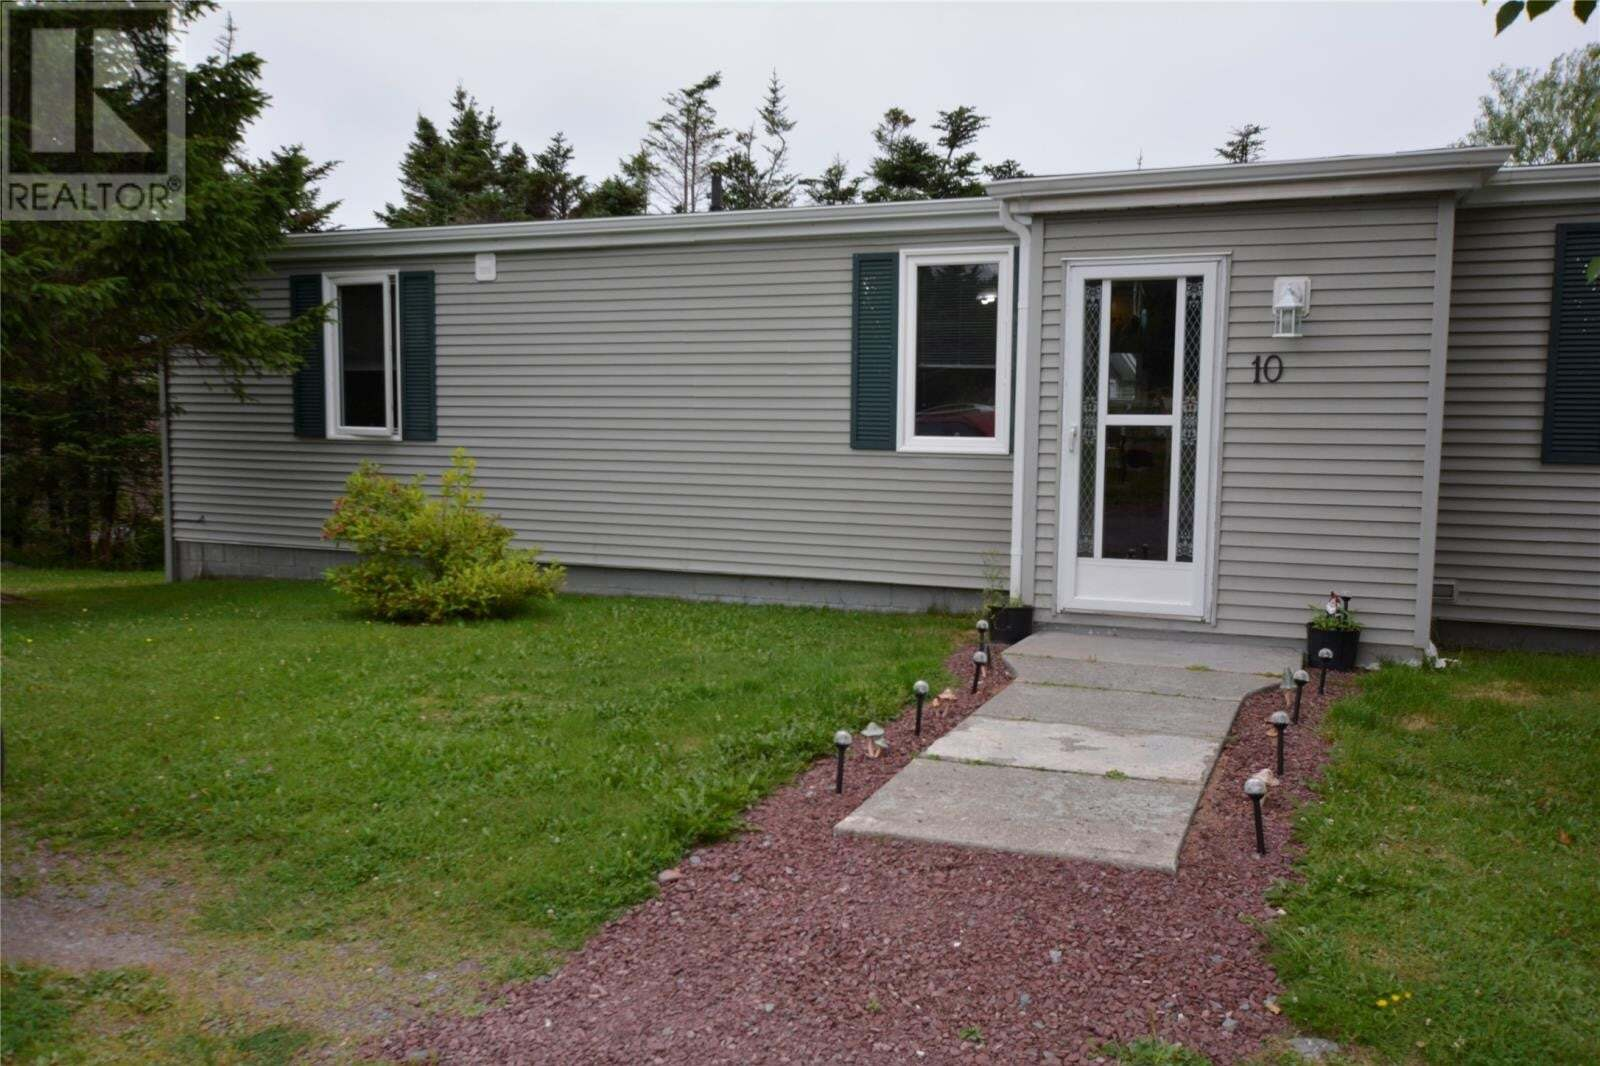 House for sale at 10 Church St Hearts Delight Newfoundland - MLS: 1218909